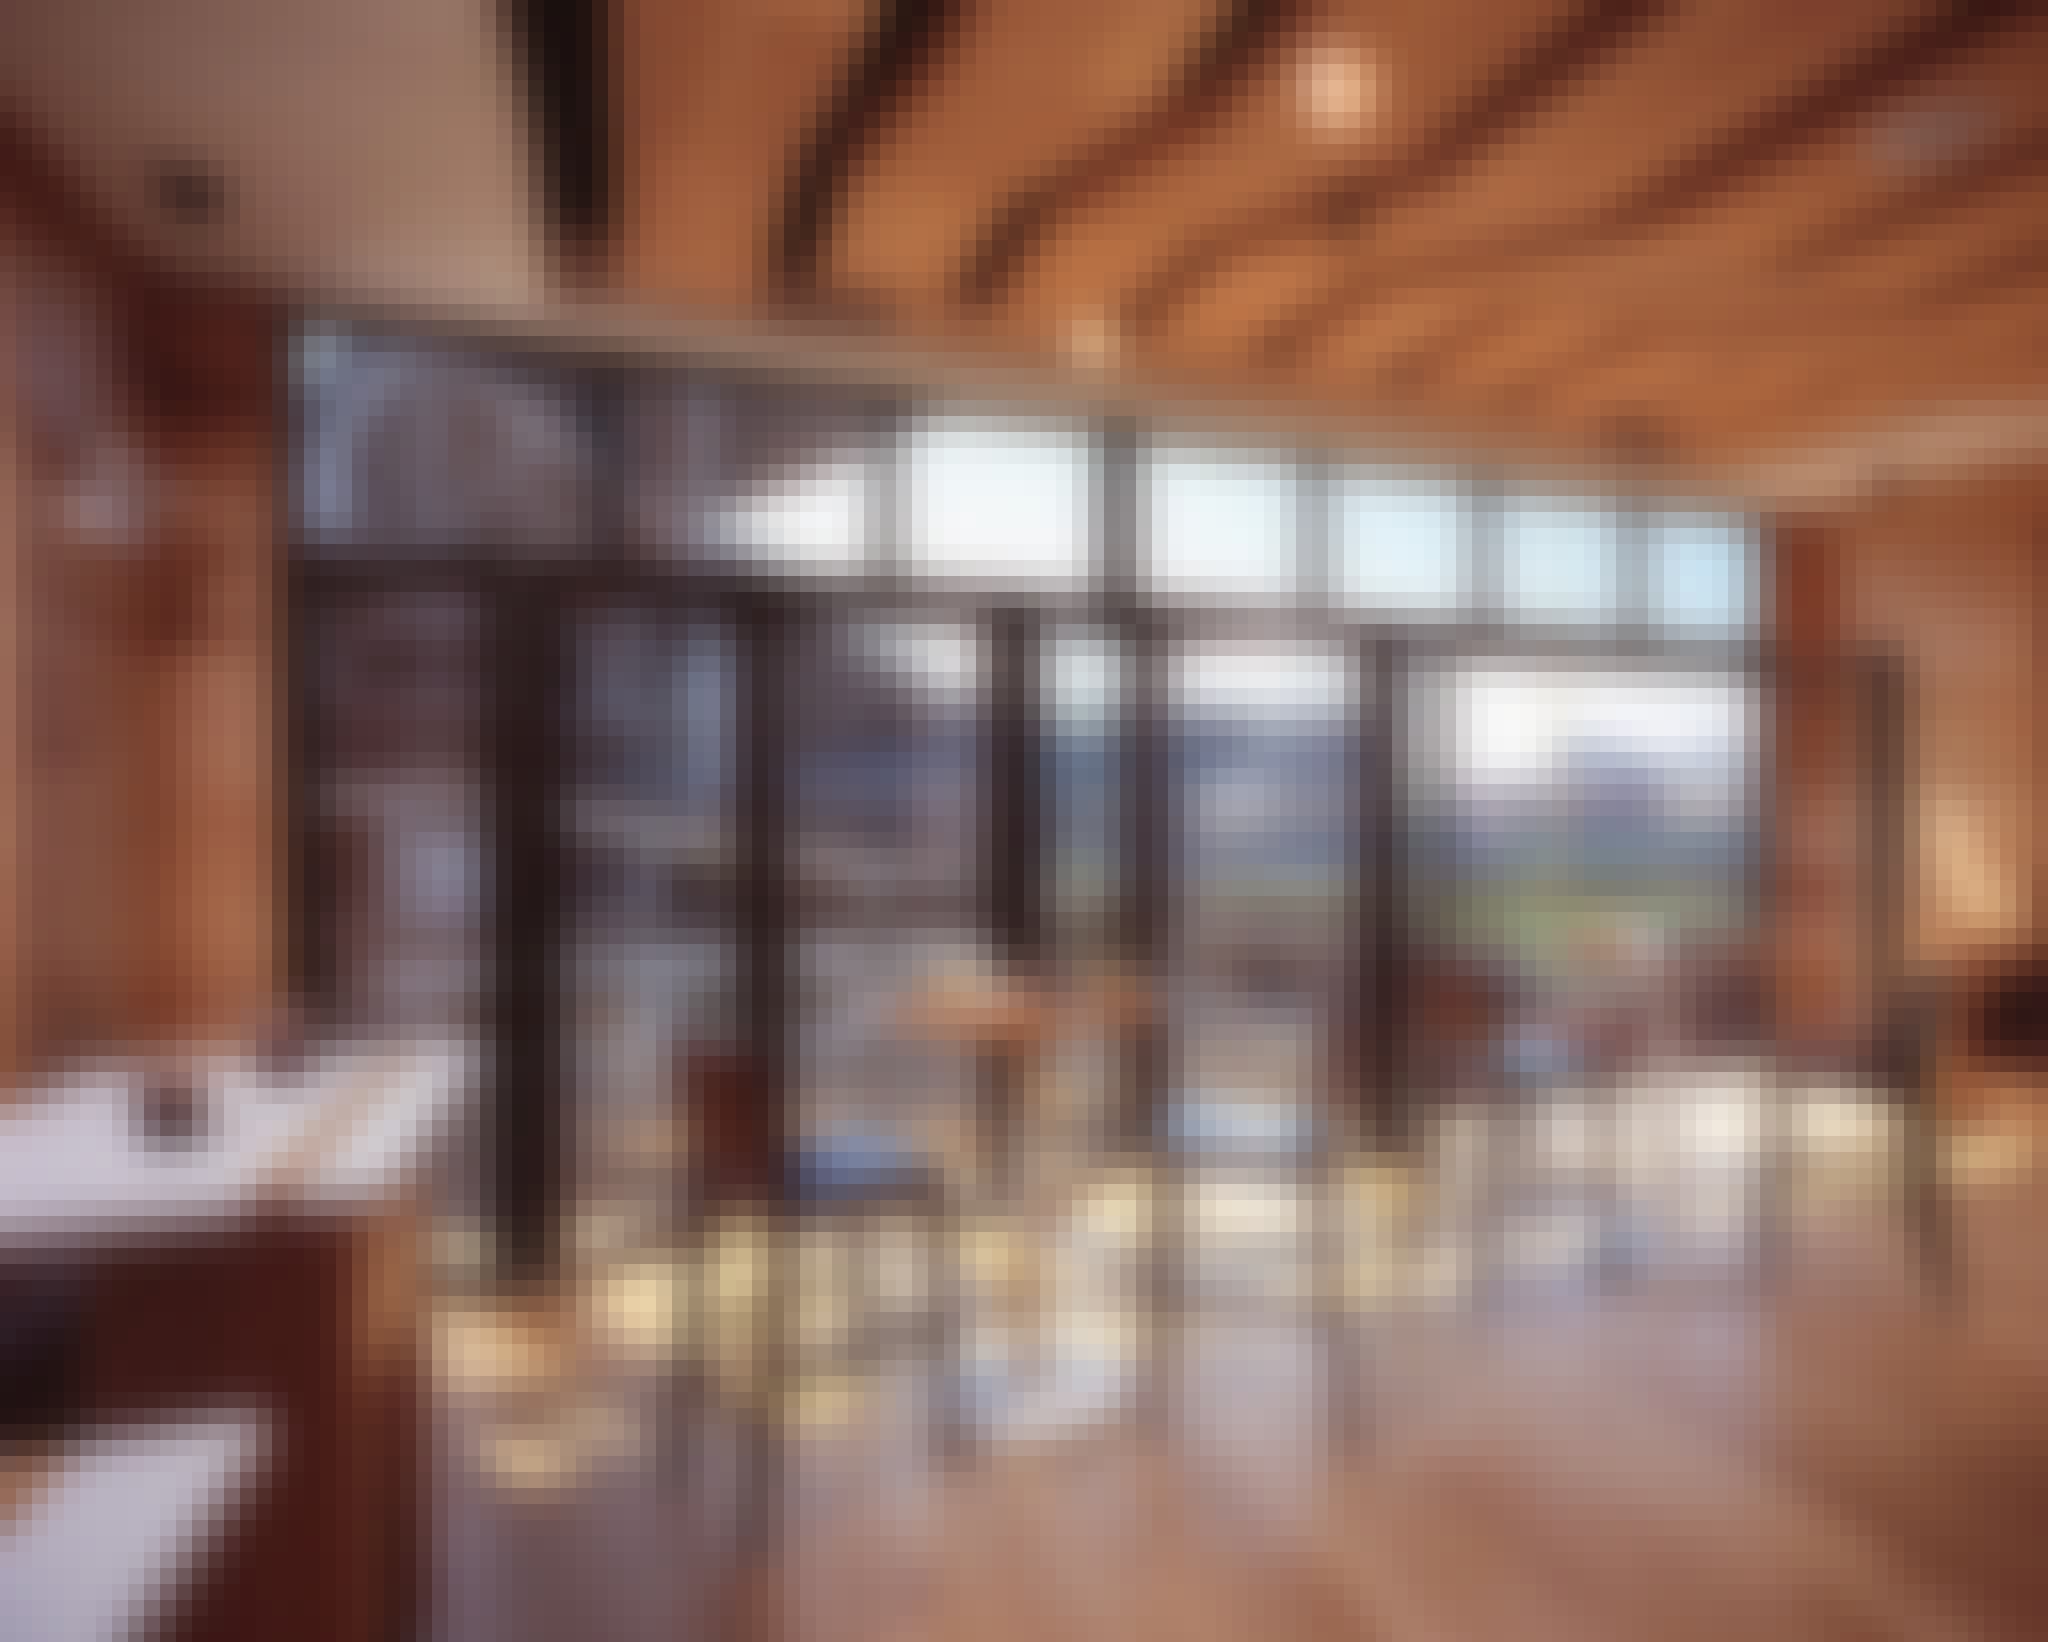 commercial folding glass wall system partially open with view of baseball view for live games